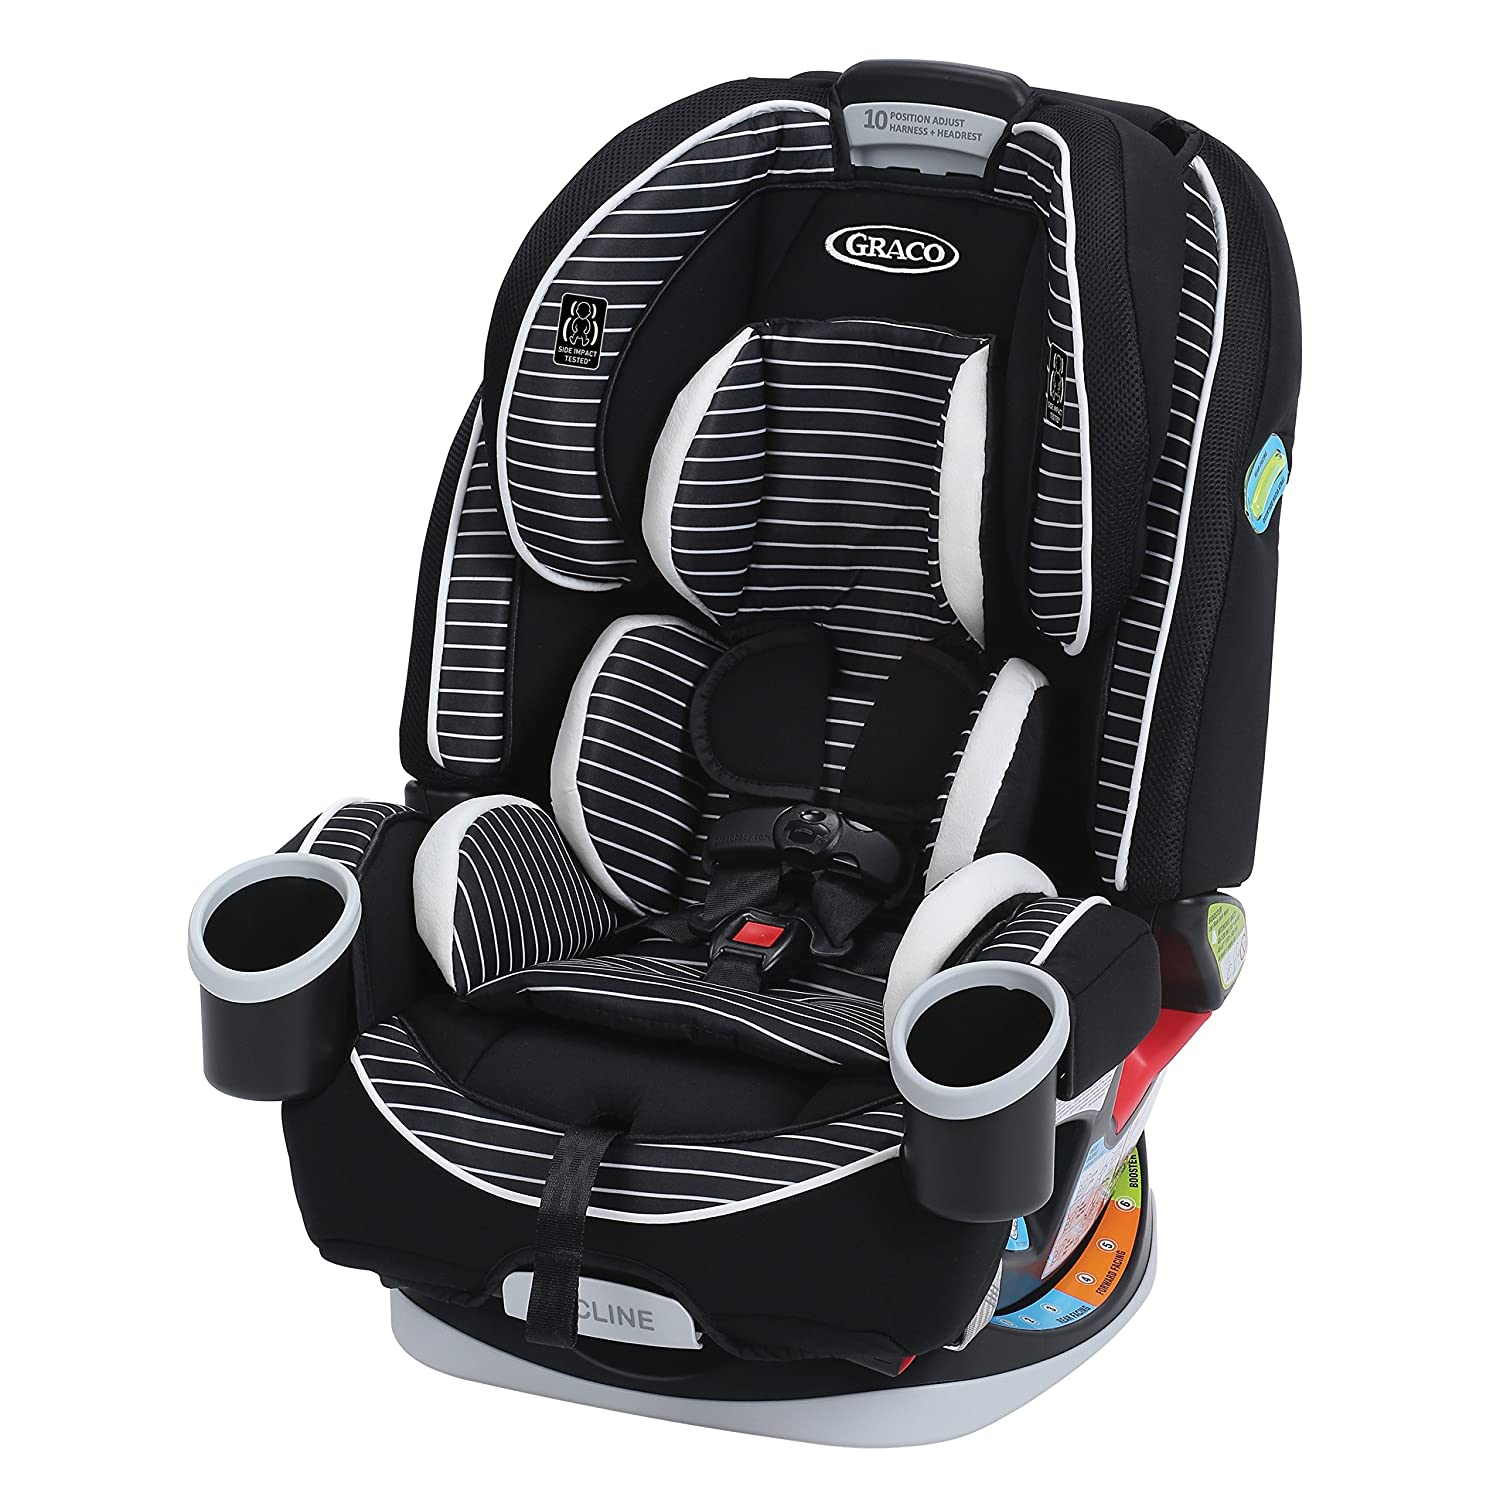 Finding The Best Travel Car Seat: 5 Reviews And Ultimate Guide 3